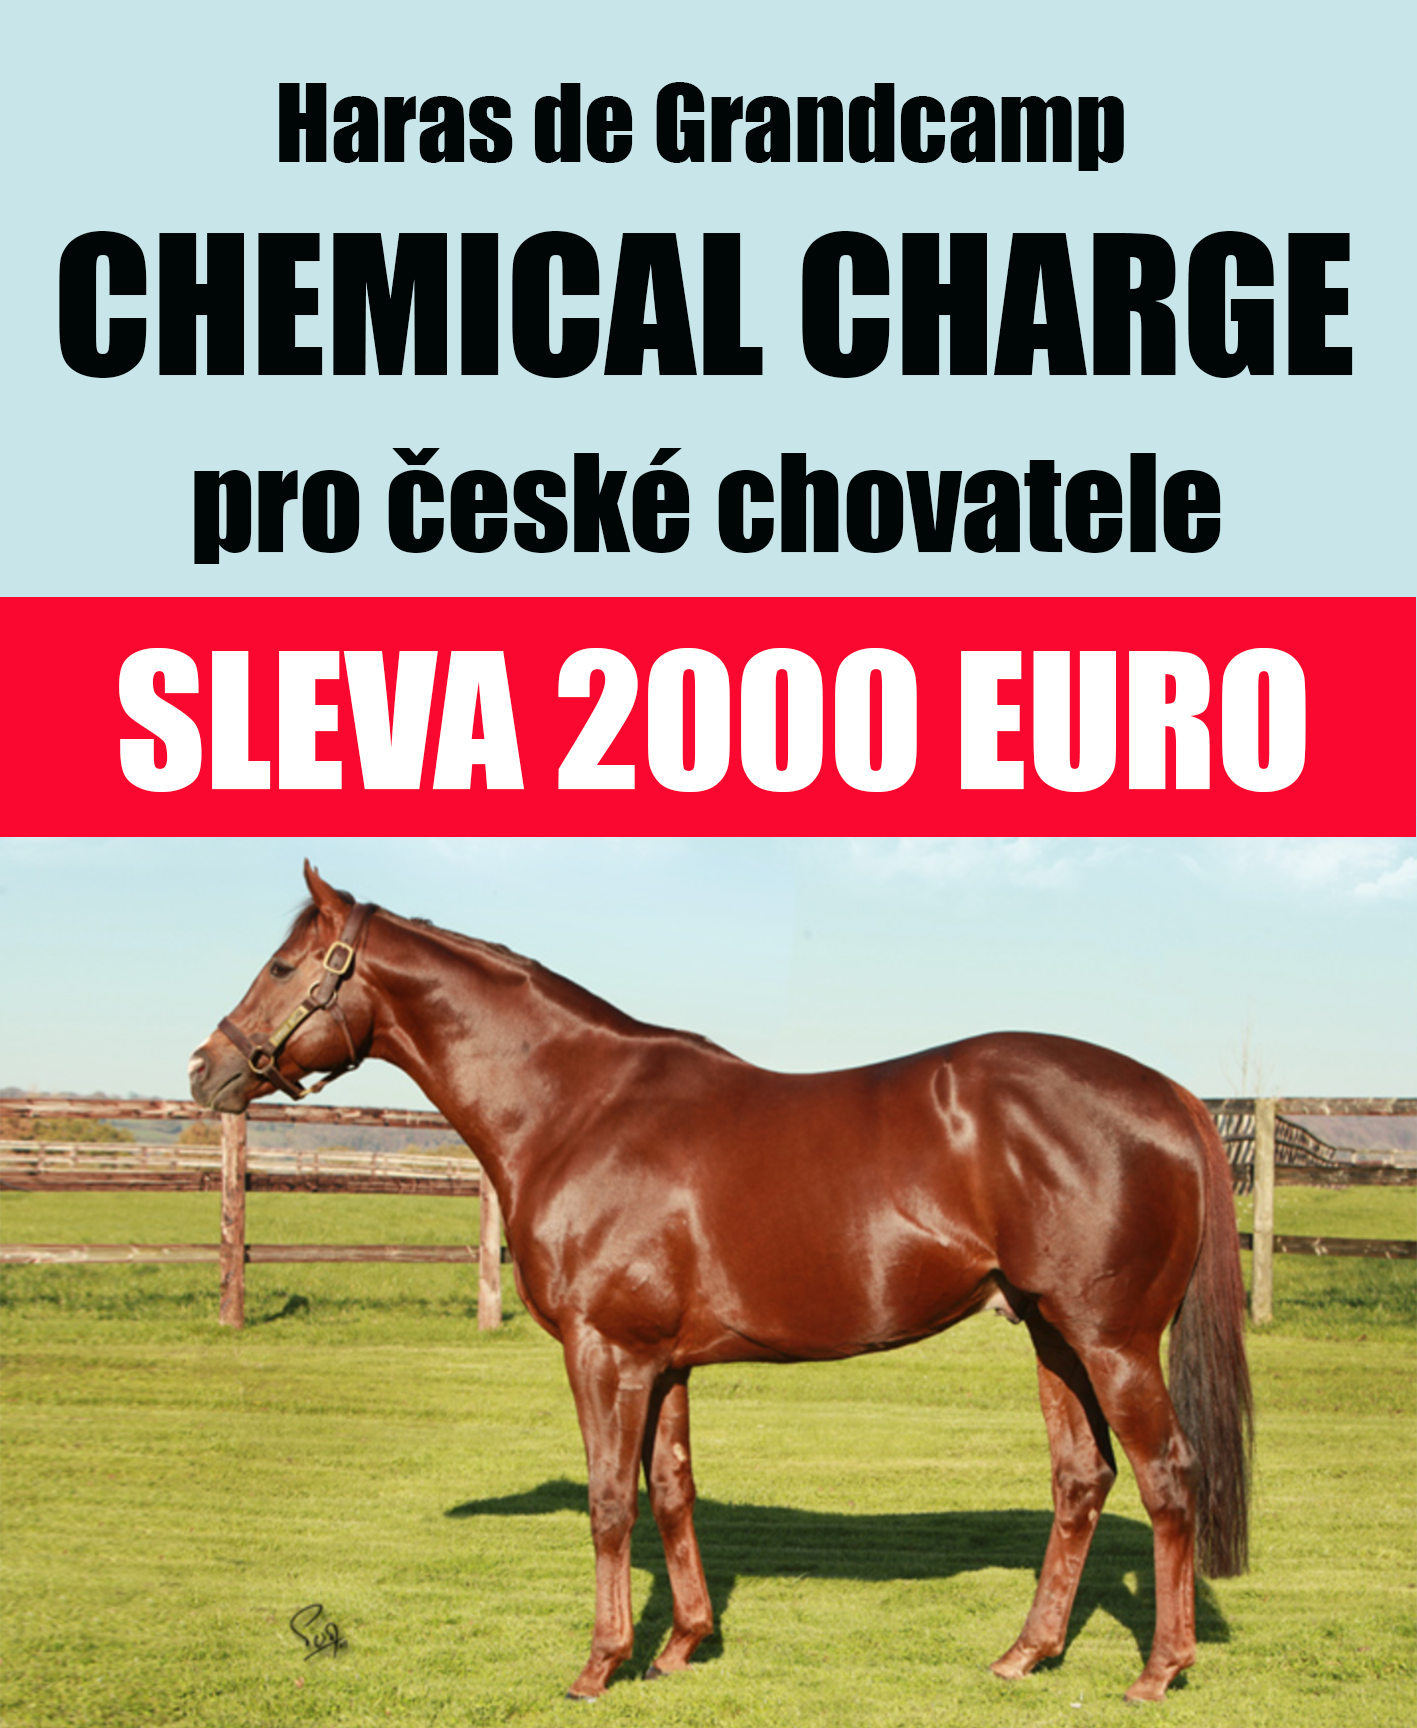 Chemical Charge